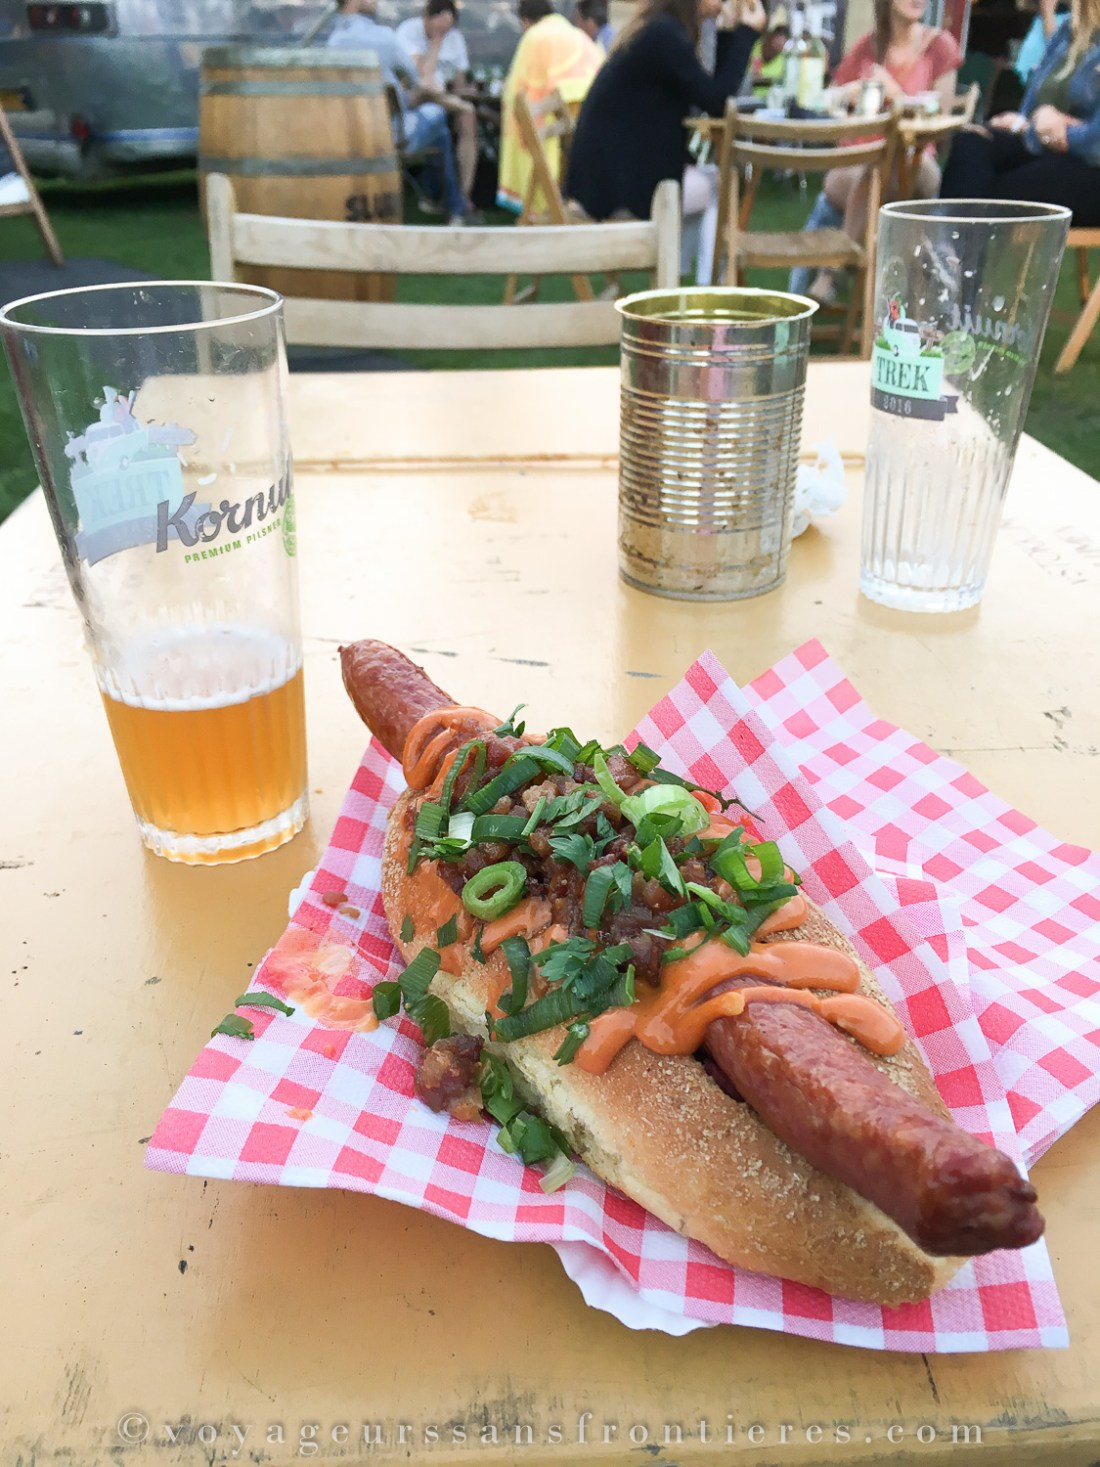 Red Dog Society hot dog at the TREK Festival - The Hague, Netherlands